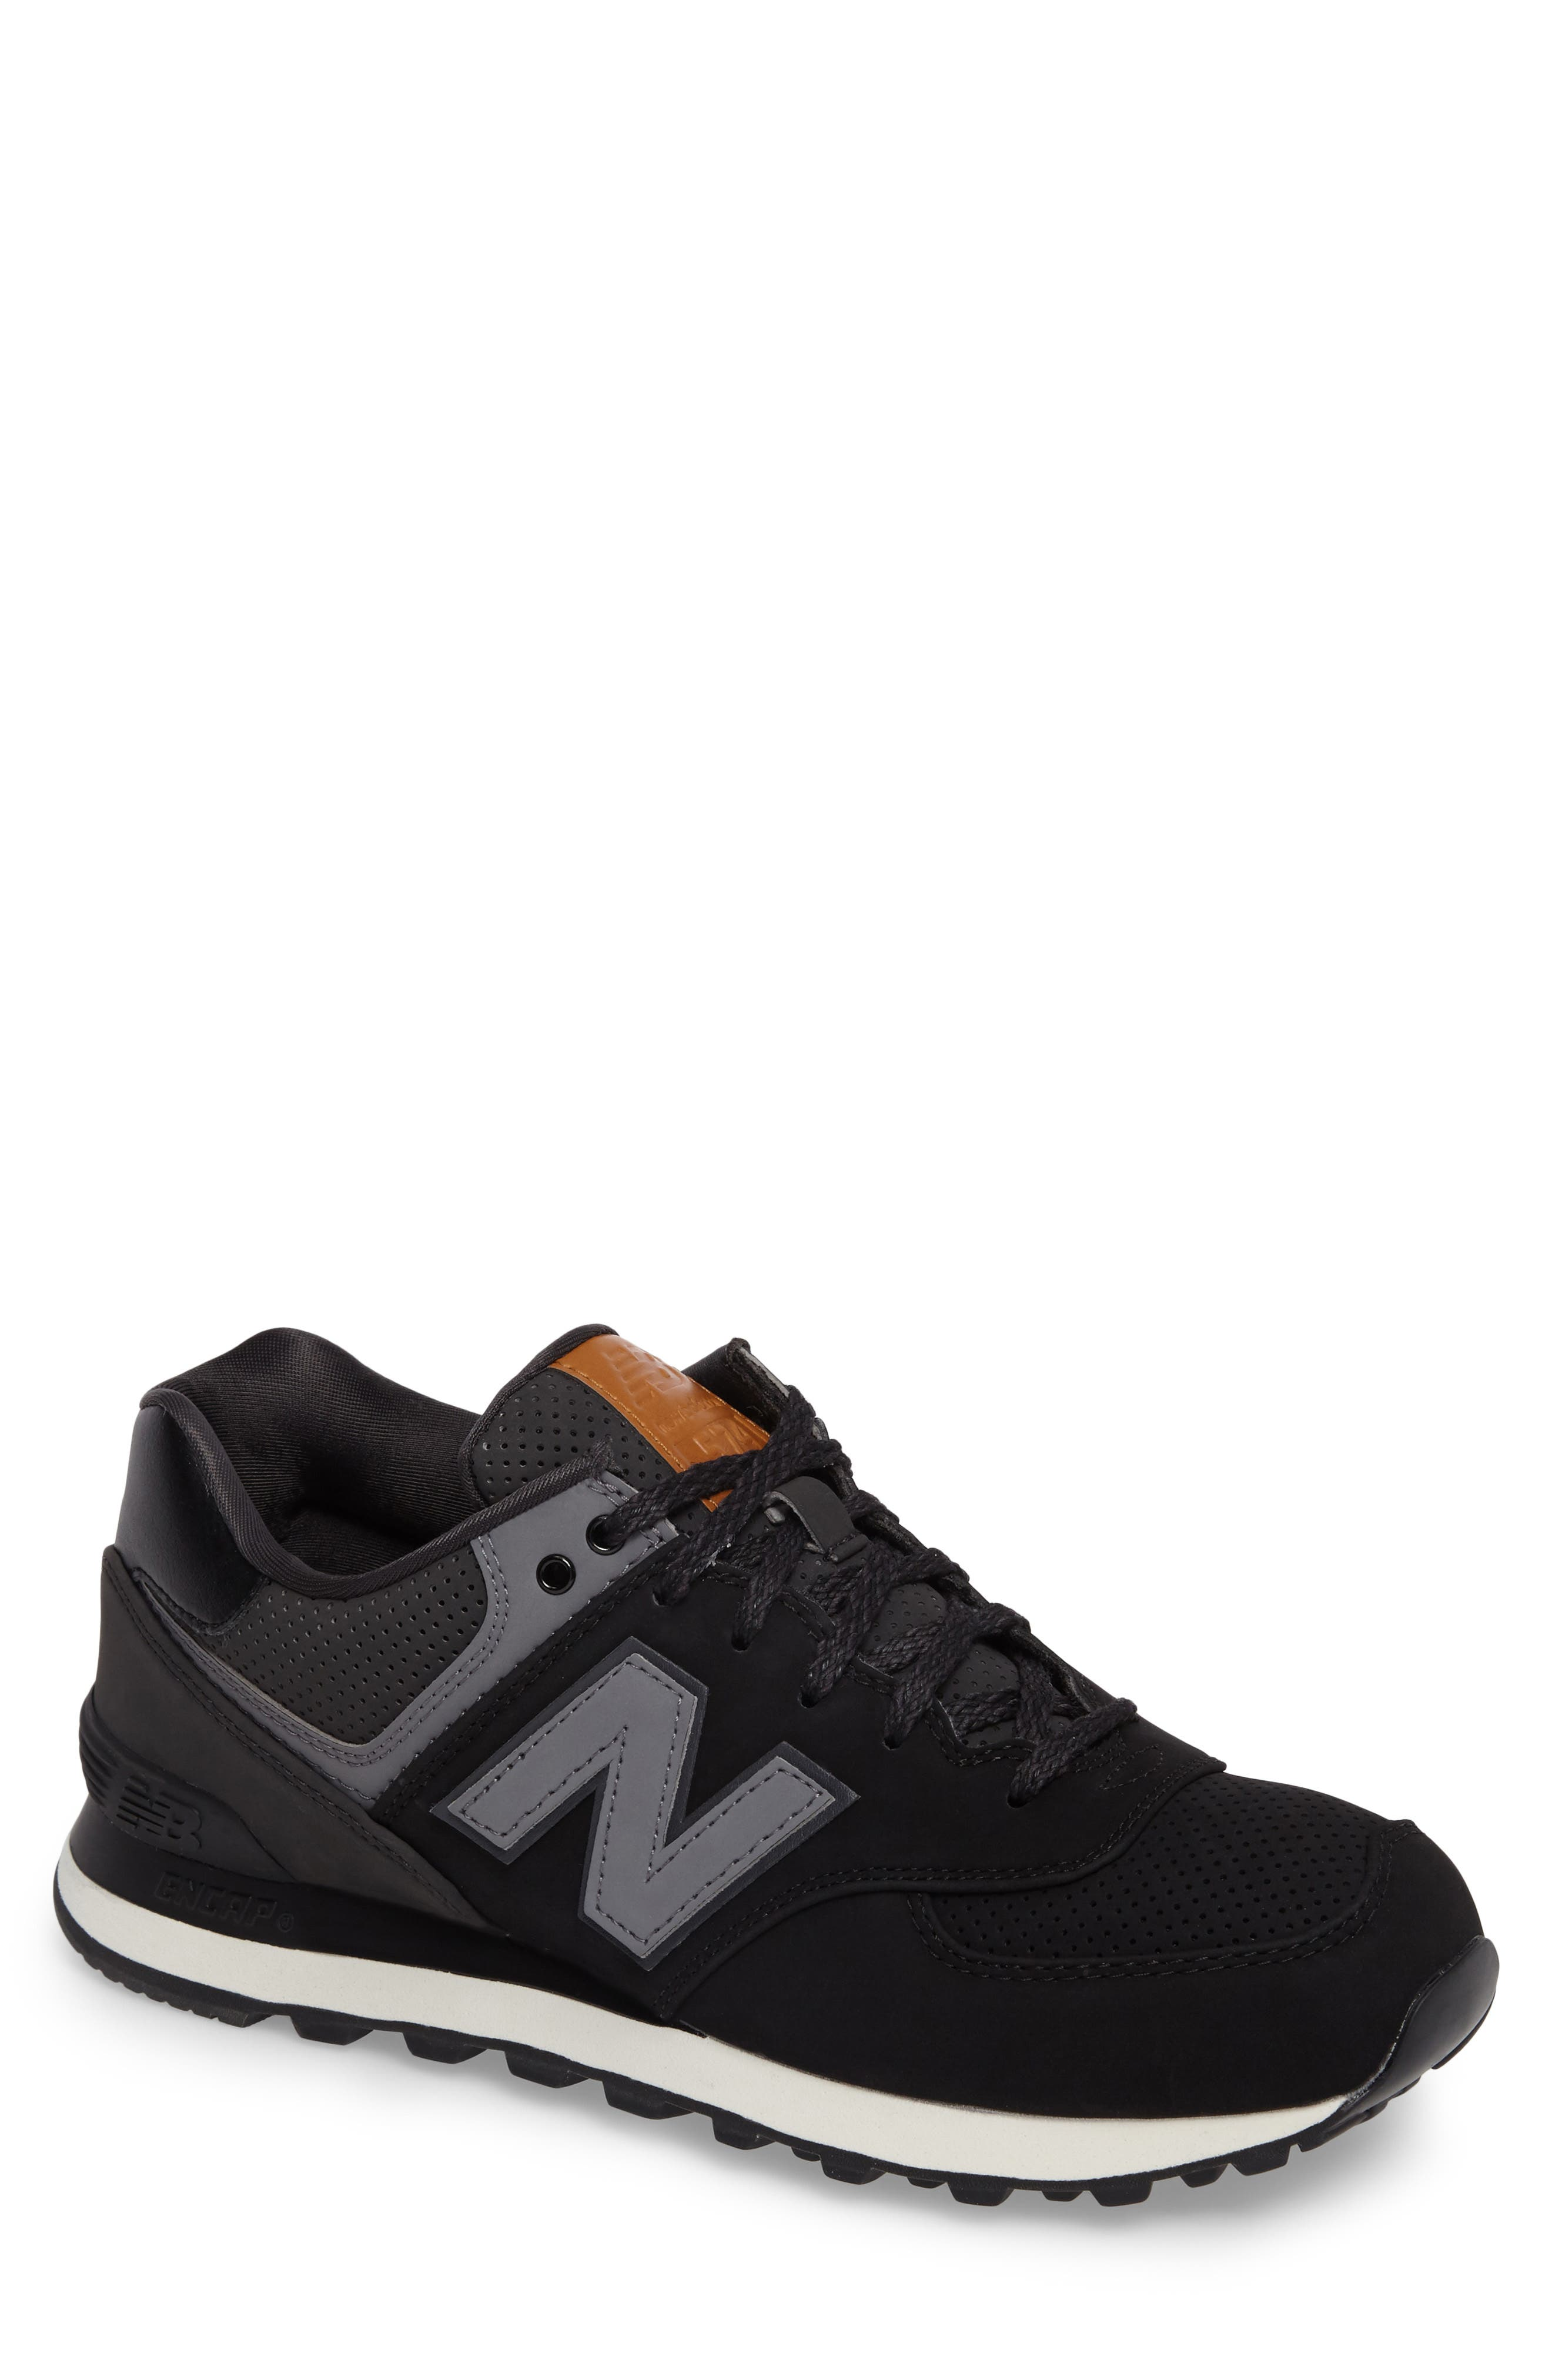 NEW BALANCE 574 Outdoor Sneaker